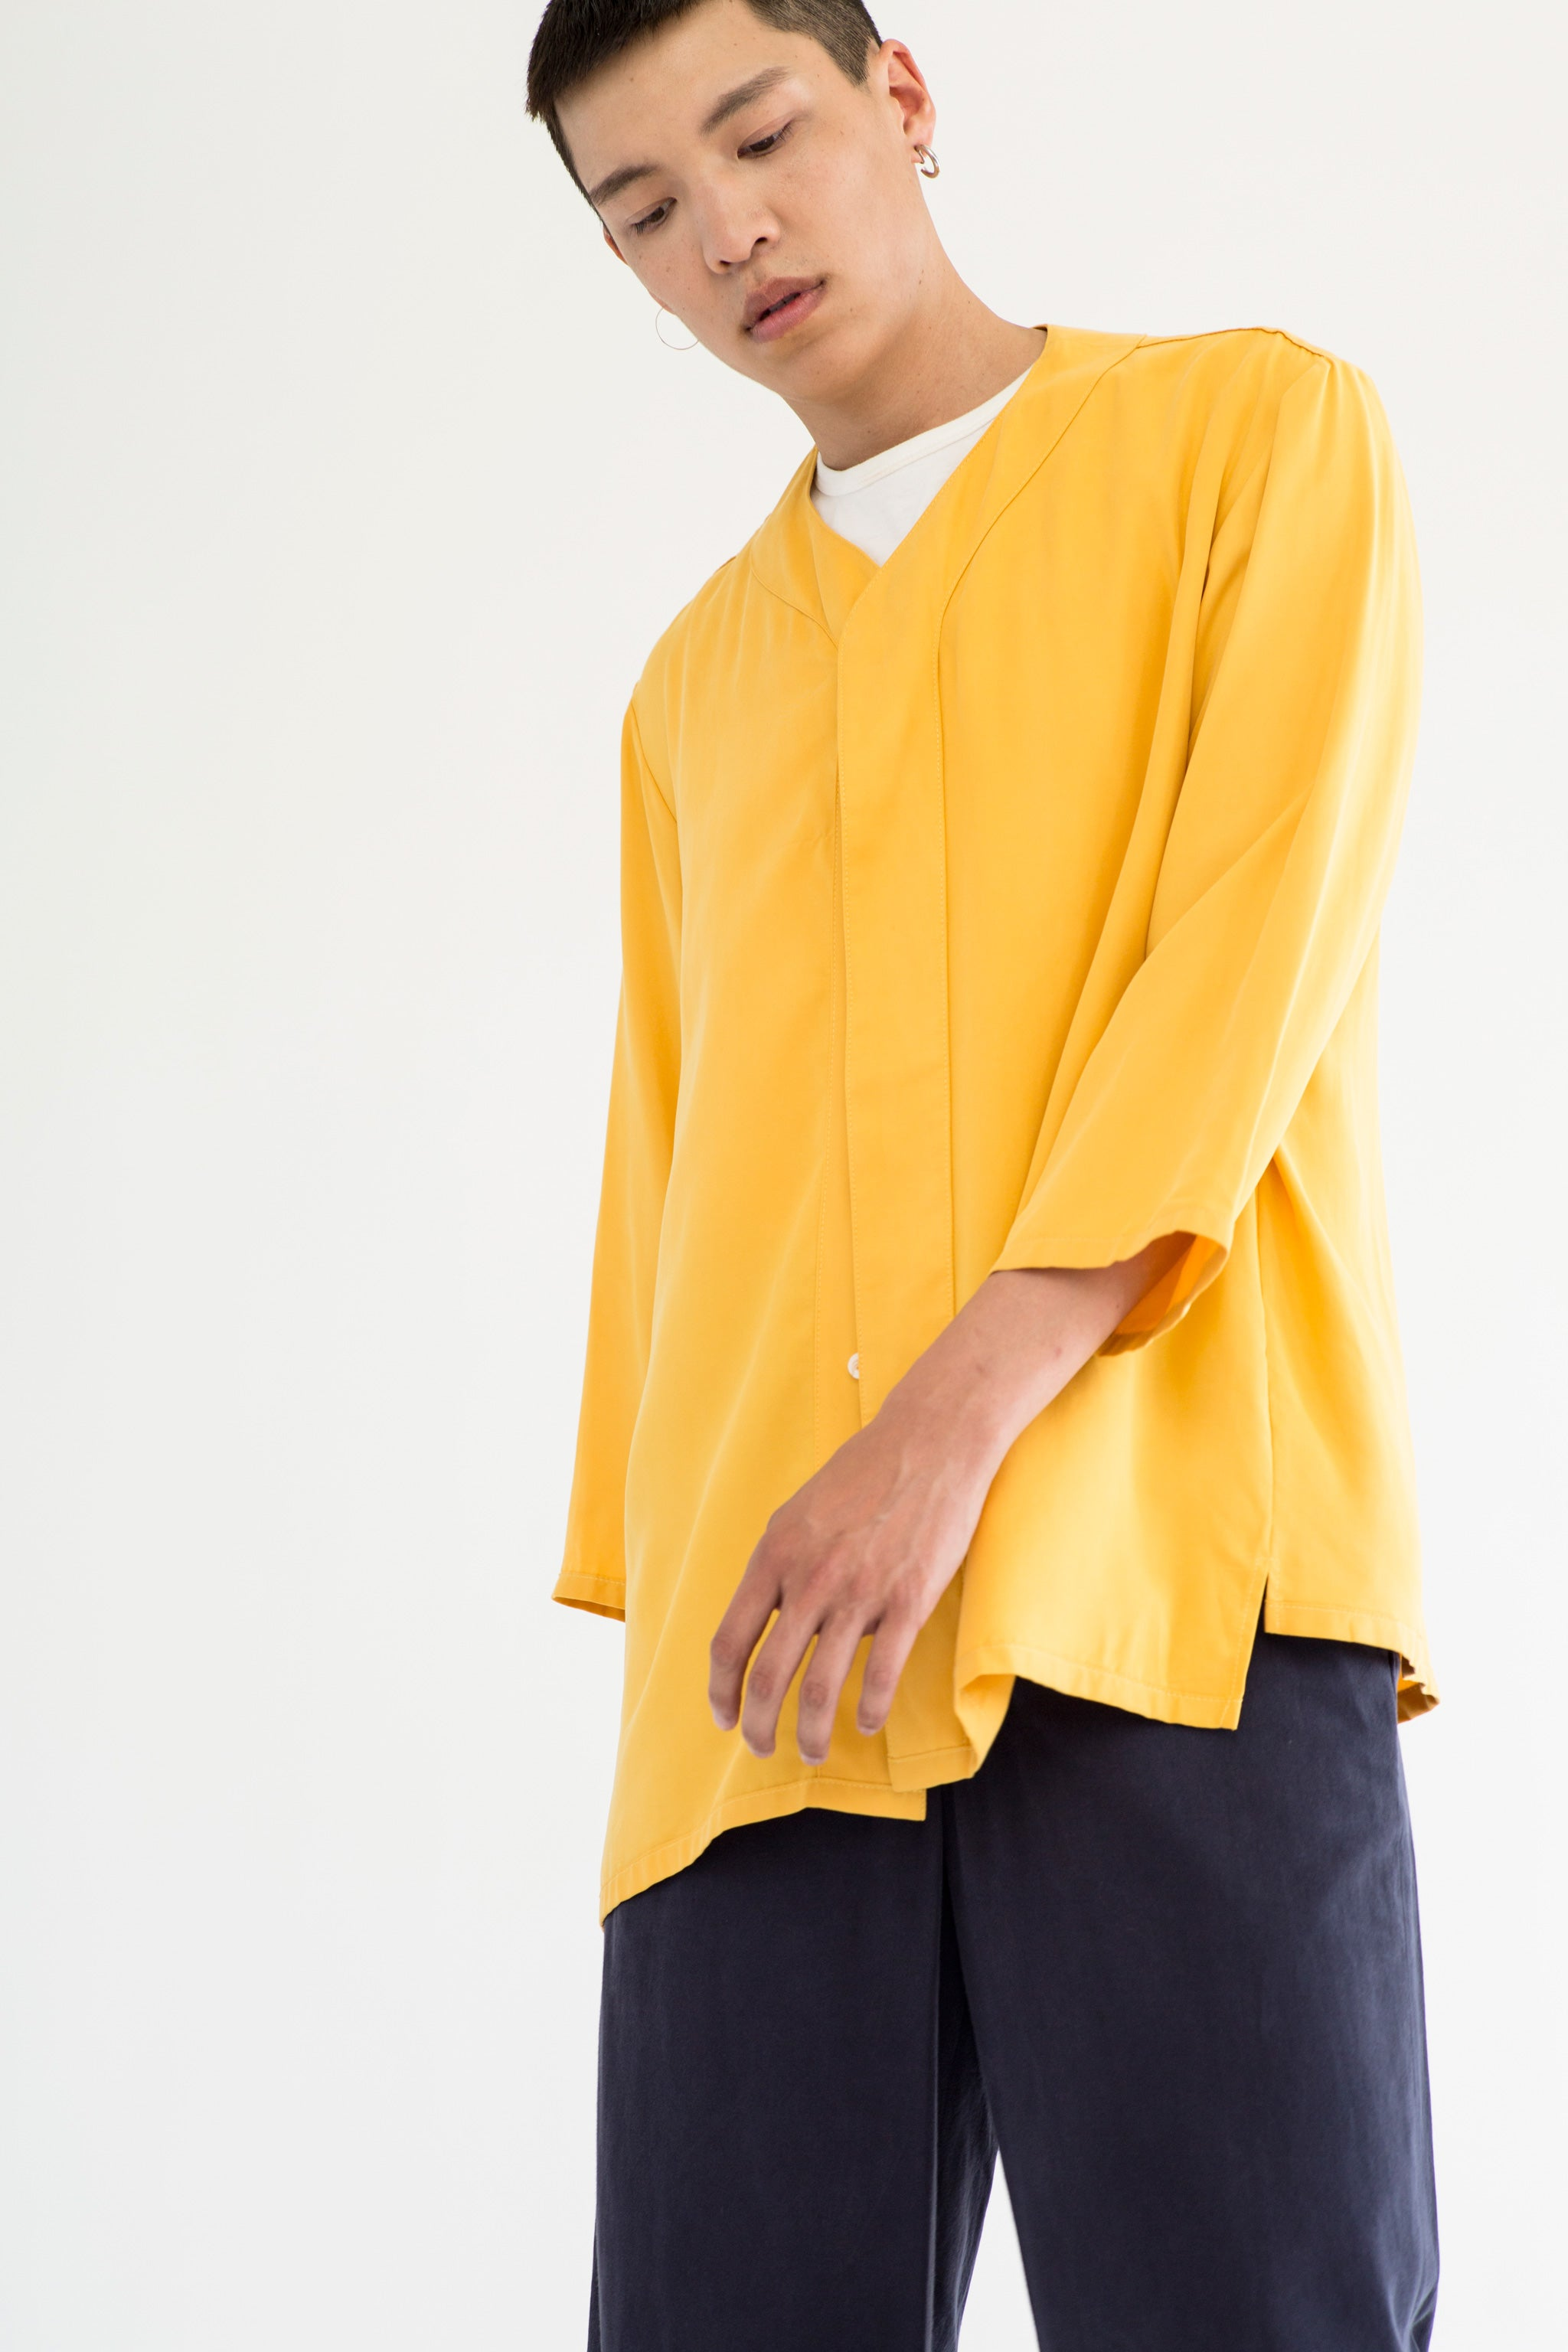 Goodfight Moonshot Baseball Shirt Yellow